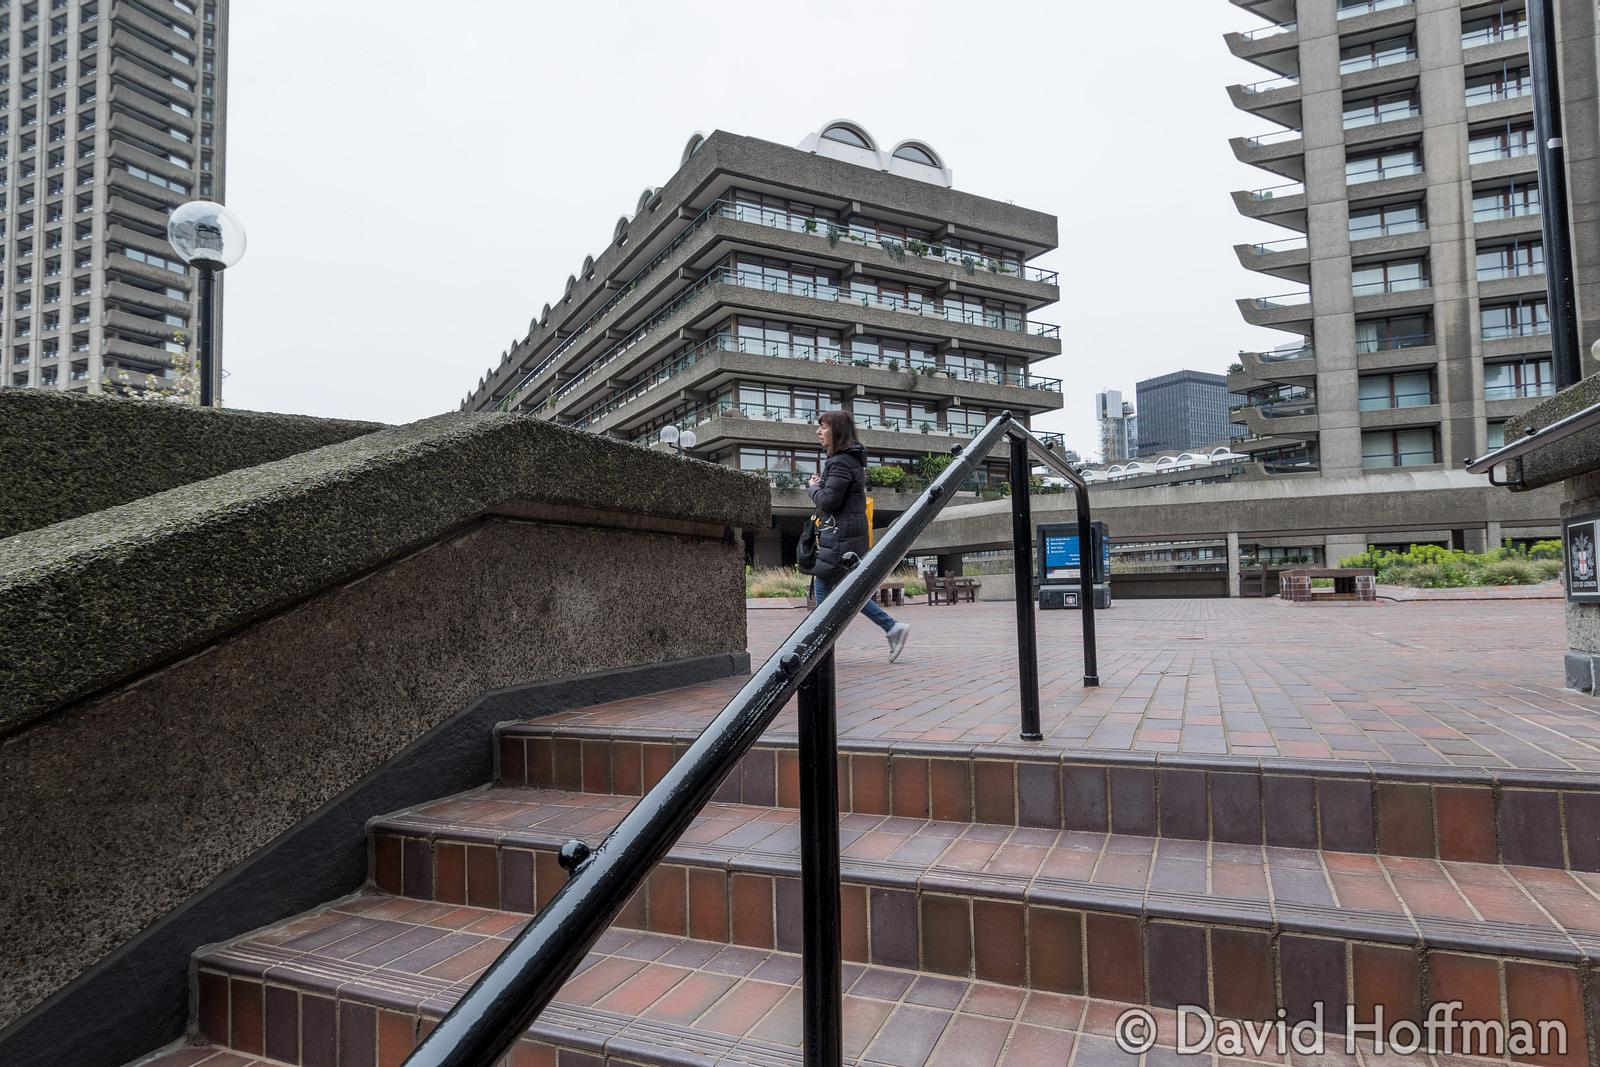 Barbican, London. 22 March 2019.